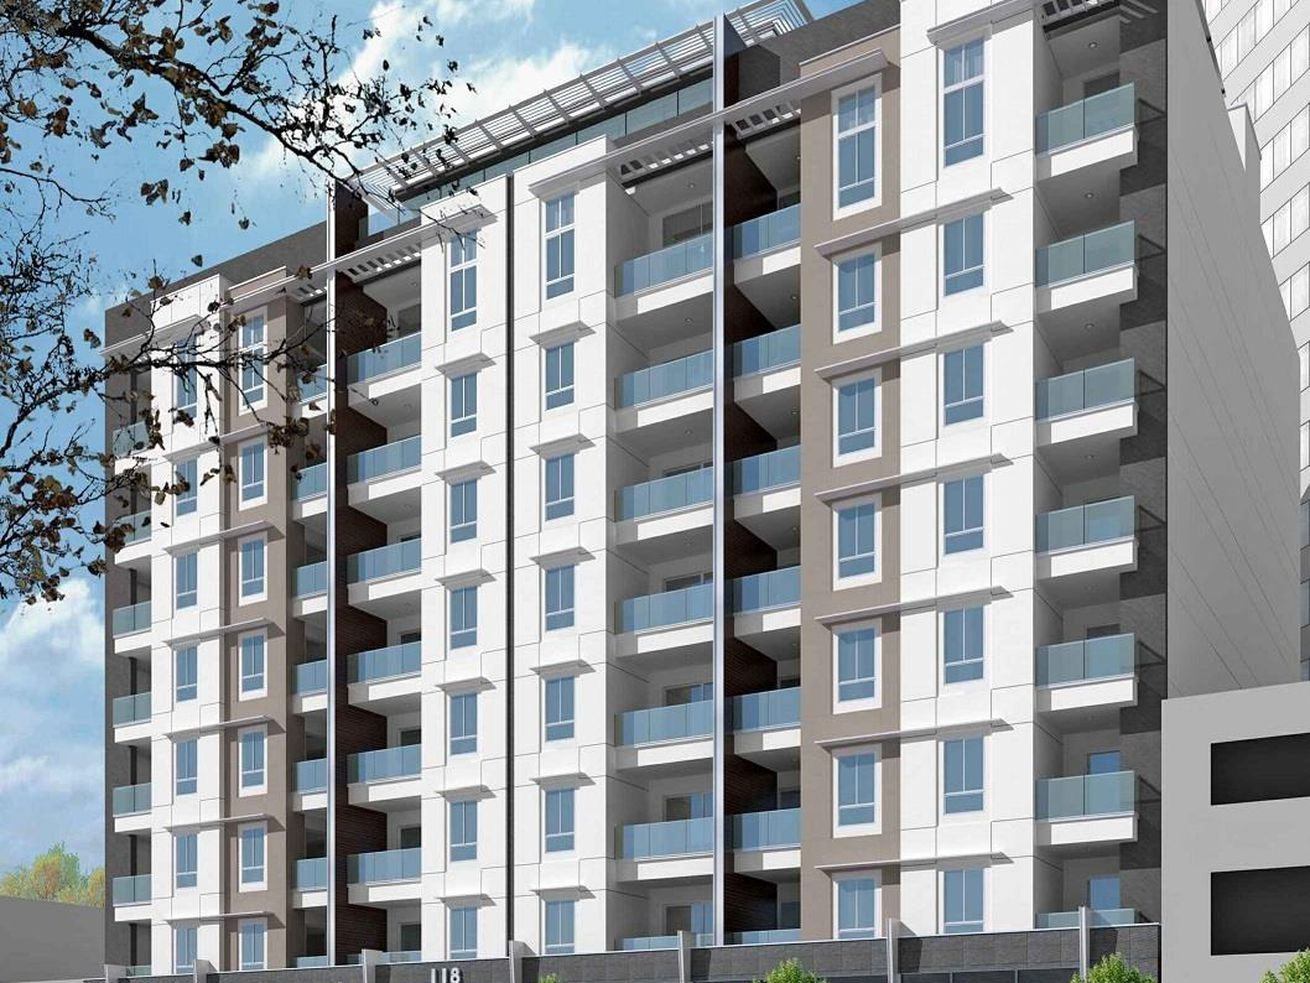 Lotus 77 will hold 77 one- and two-bedroom condos.